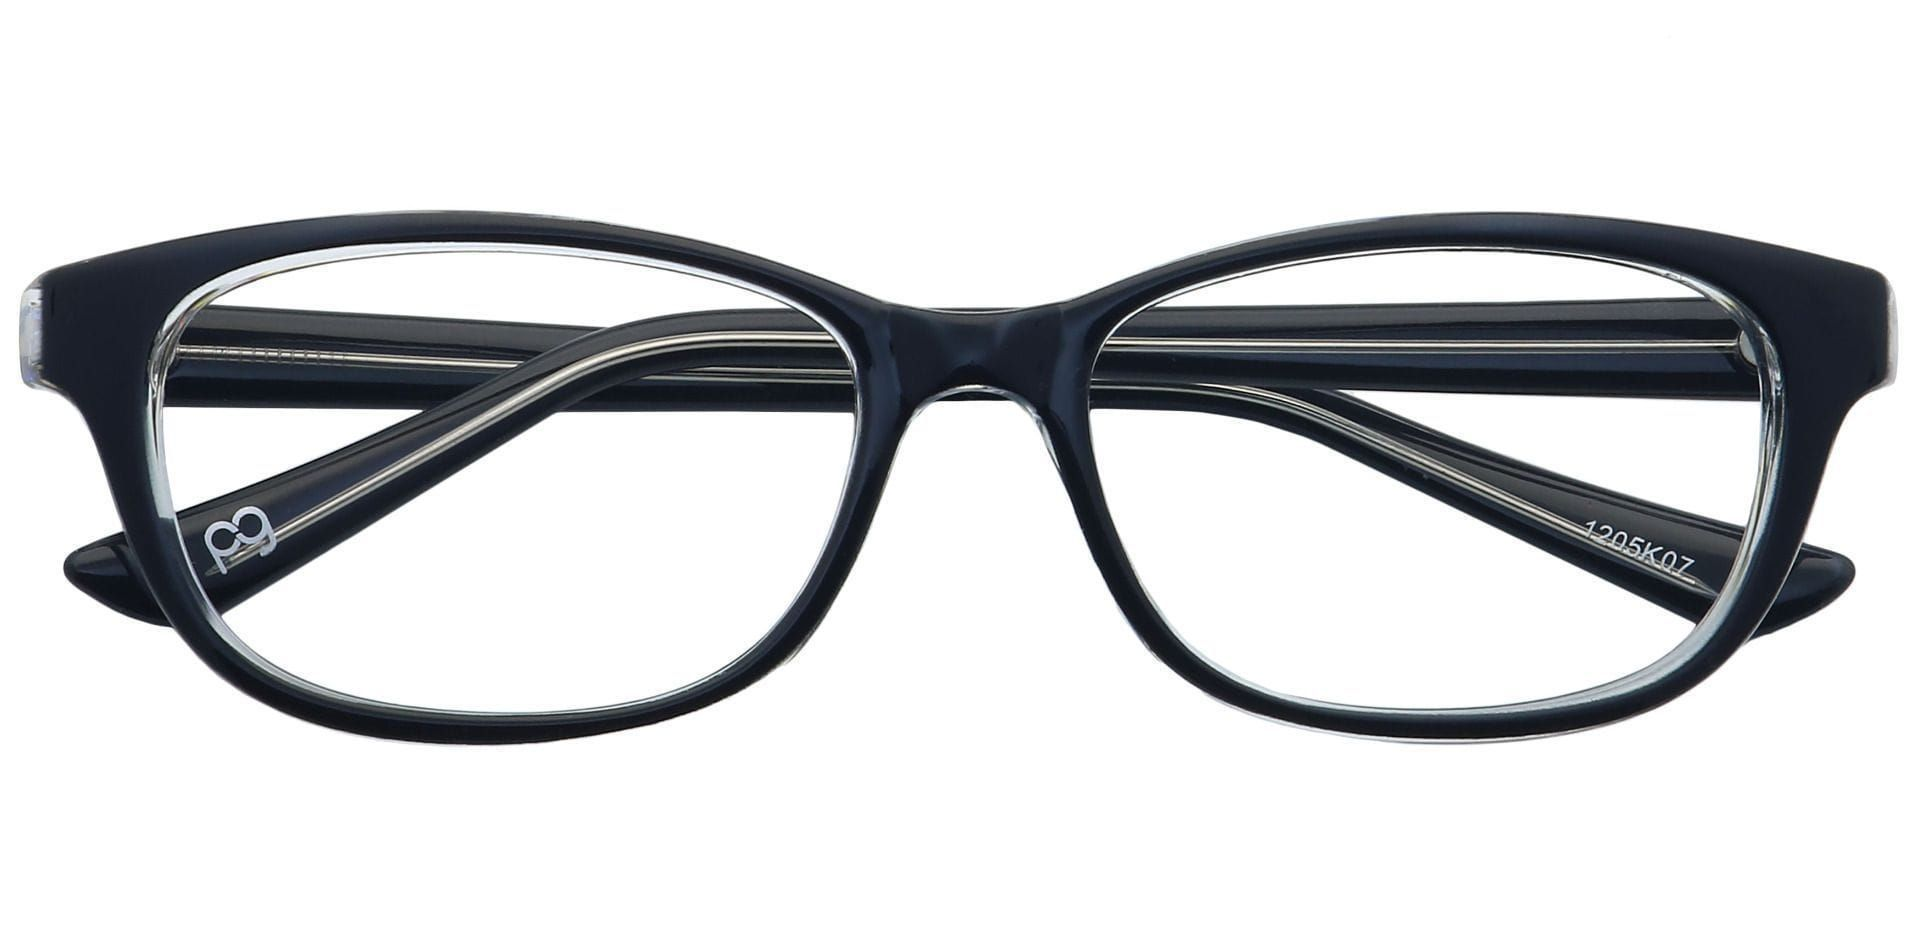 Reyna Classic Square Lined Bifocal Glasses - Black